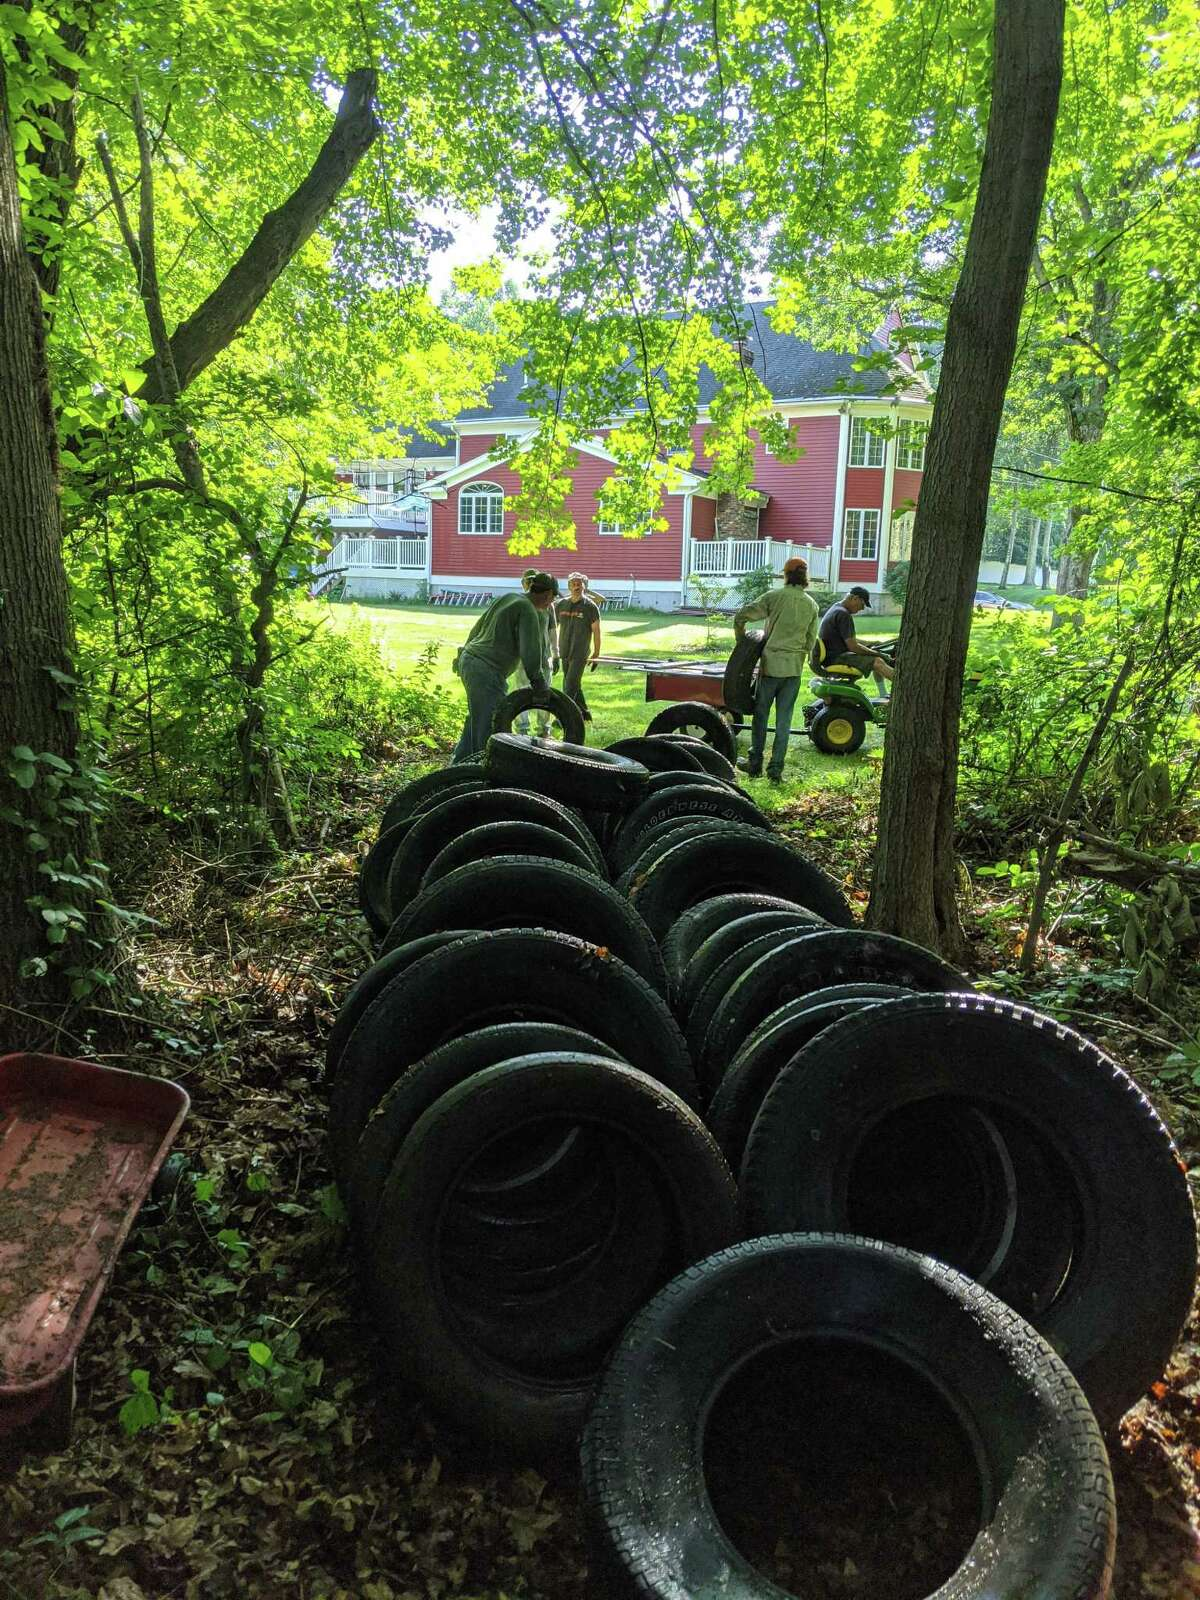 More than 20 volunteers dragged 188 old tires from the wooded area beside Little Pond Trail.